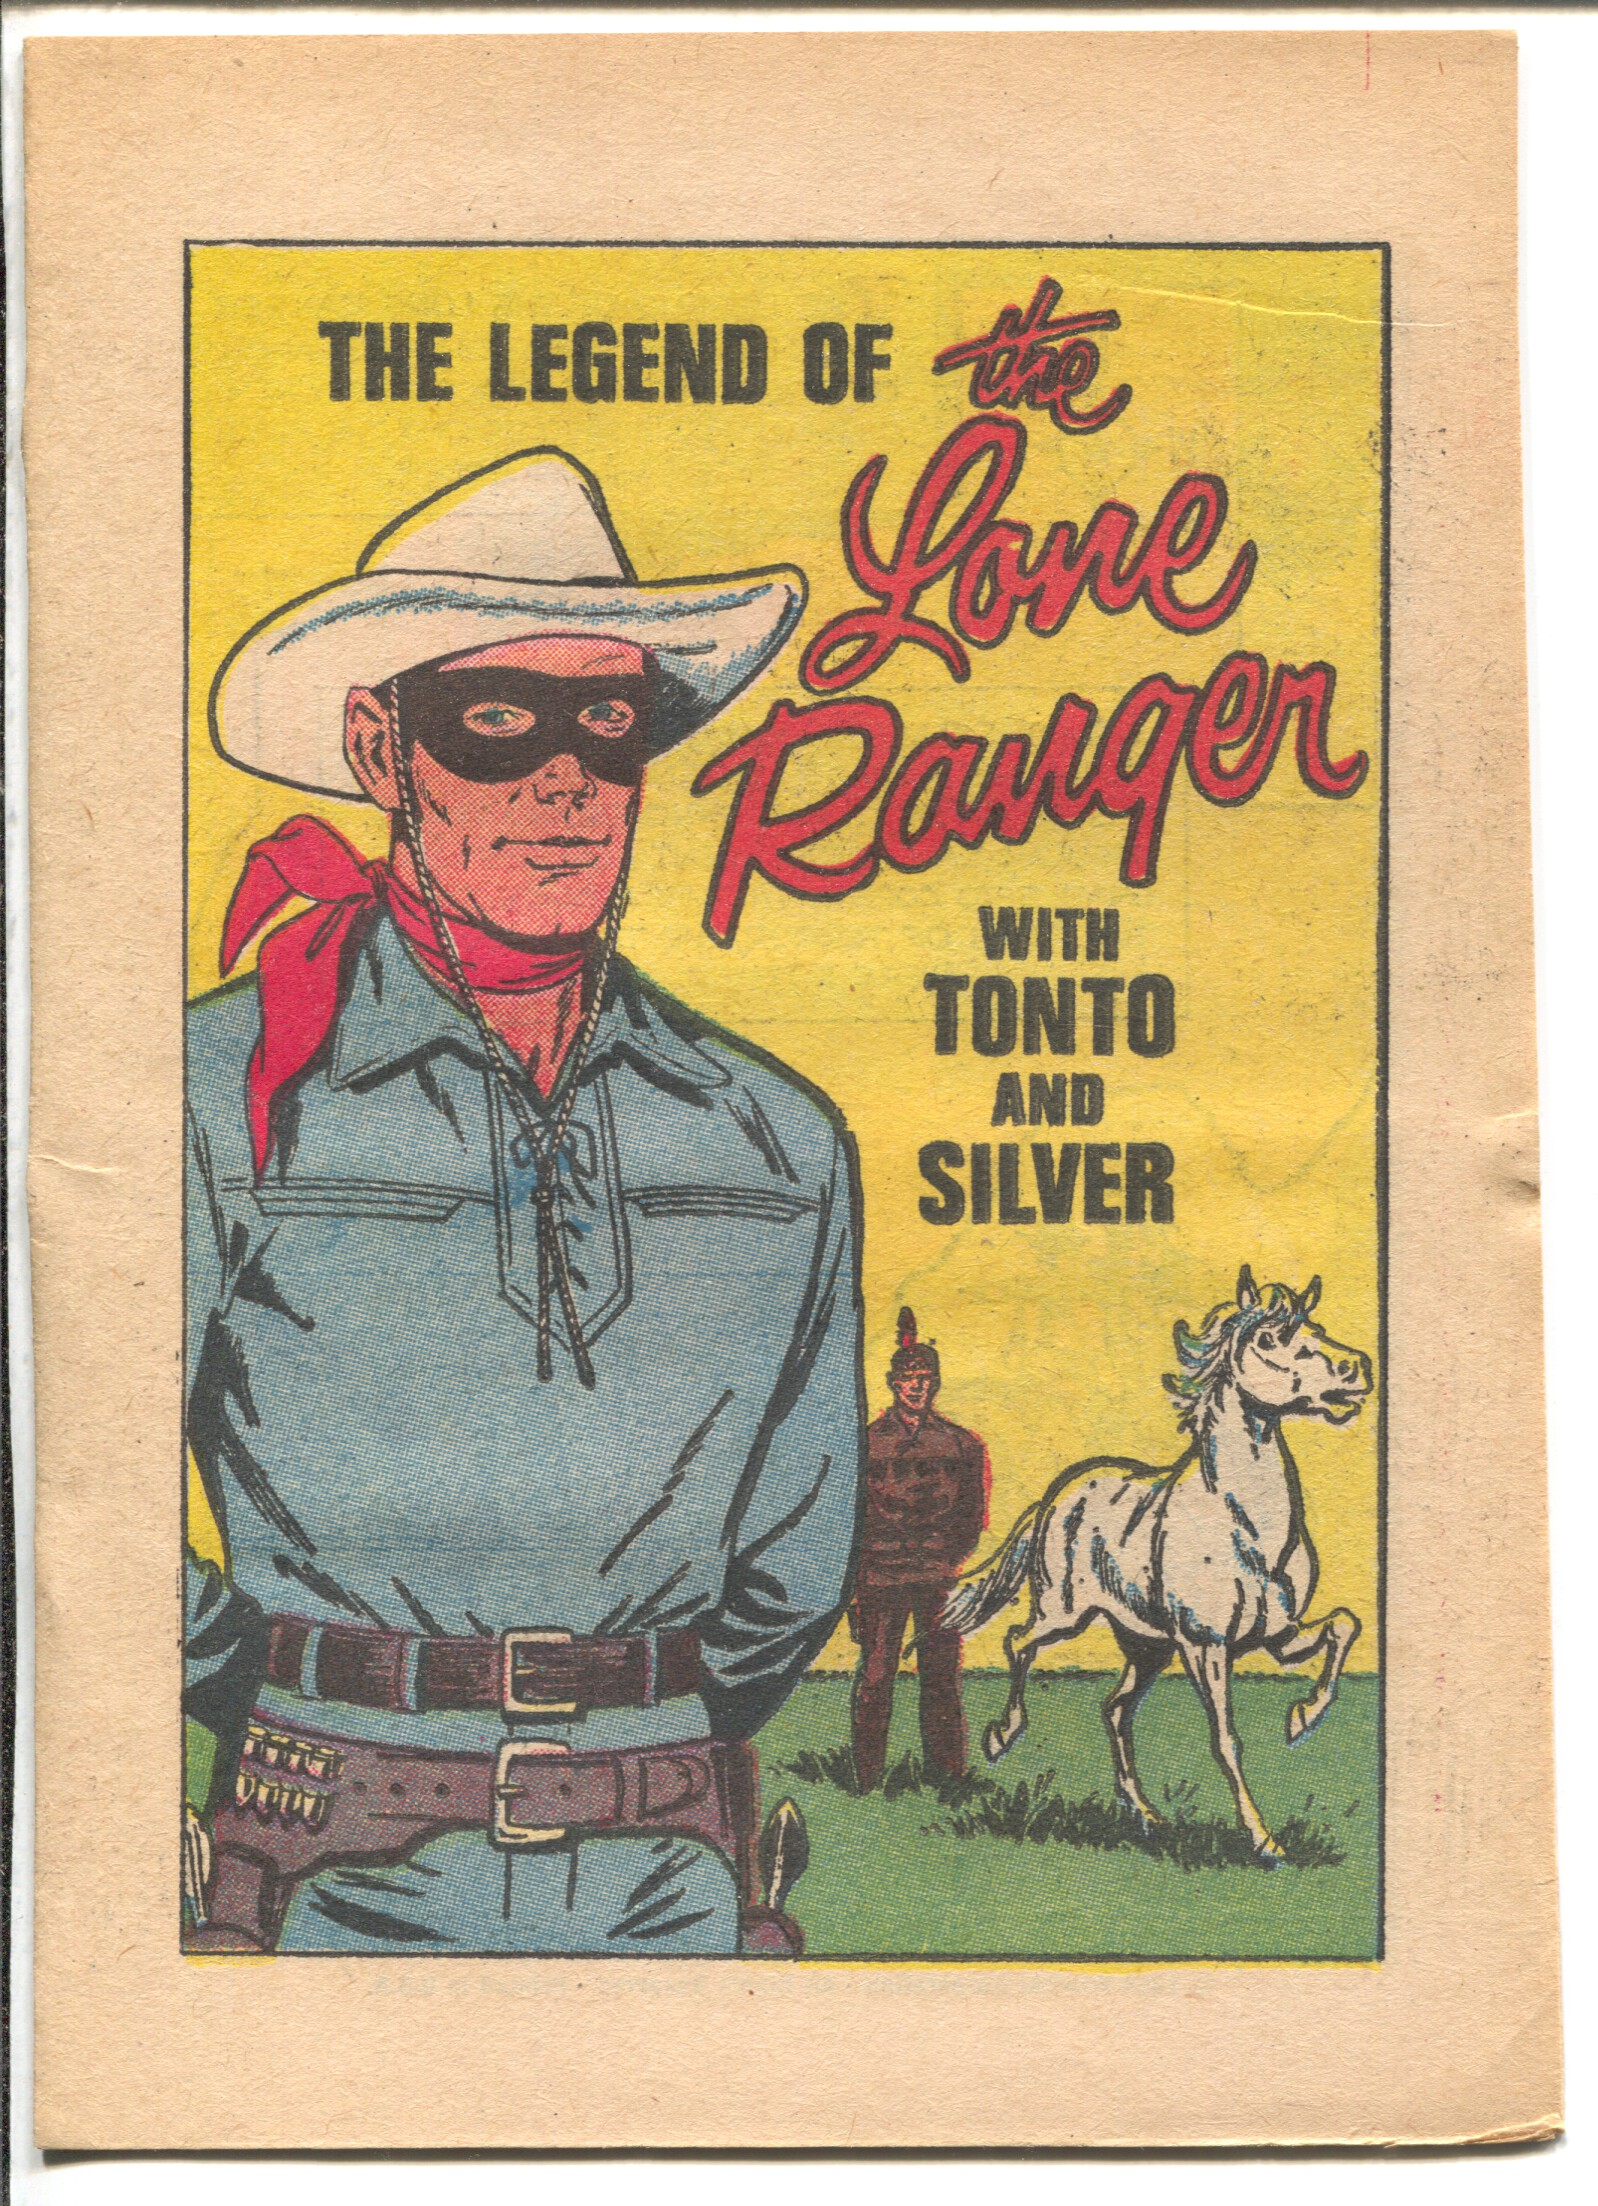 Legend of The Lone Ranger #1 1969-Tonto-Silver-Giveaway comic book-FN+